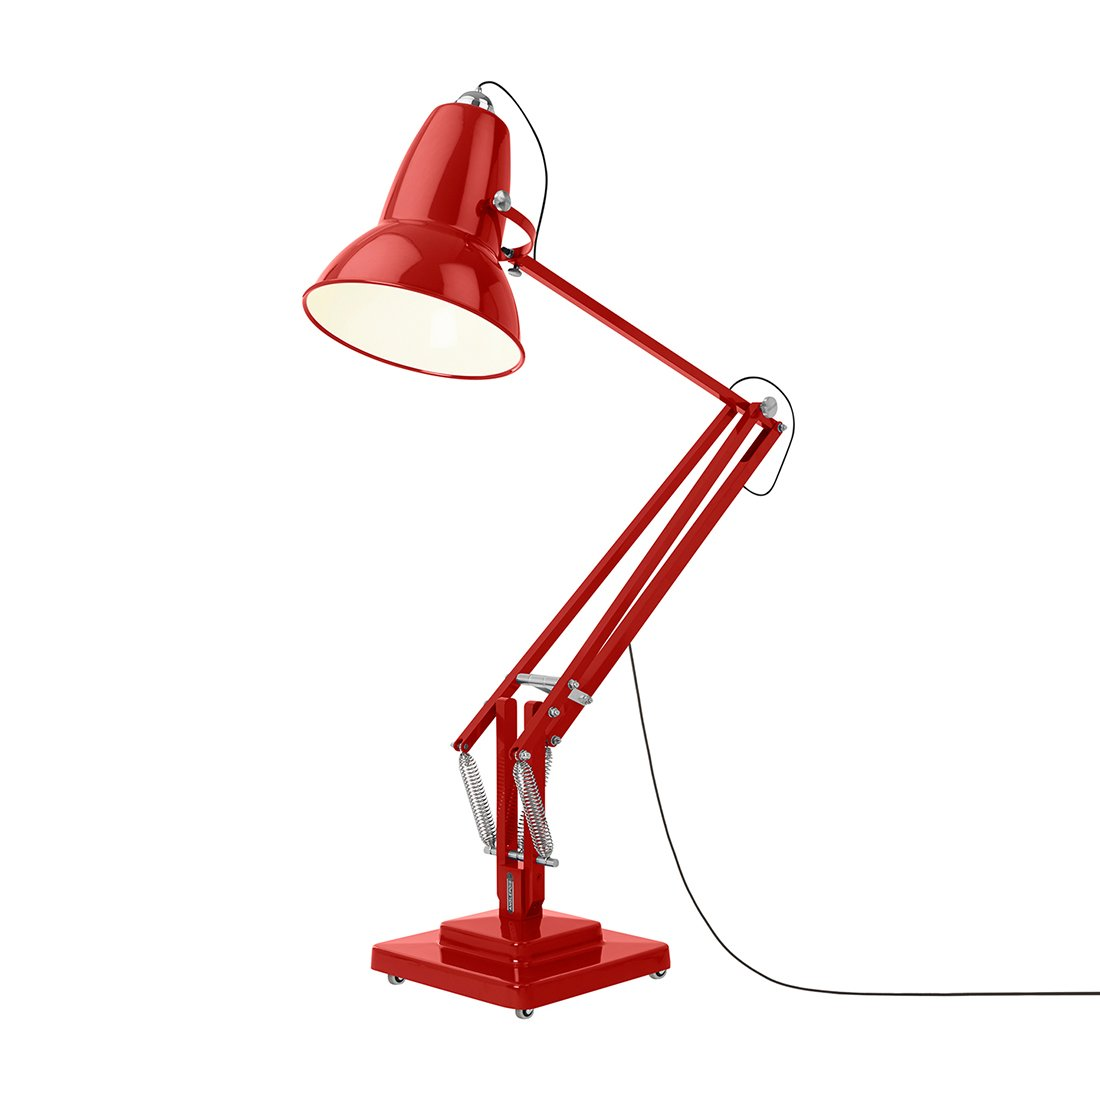 Anglepoise Original 1227 Giant Outdoor Crimson Red Vloerlamp